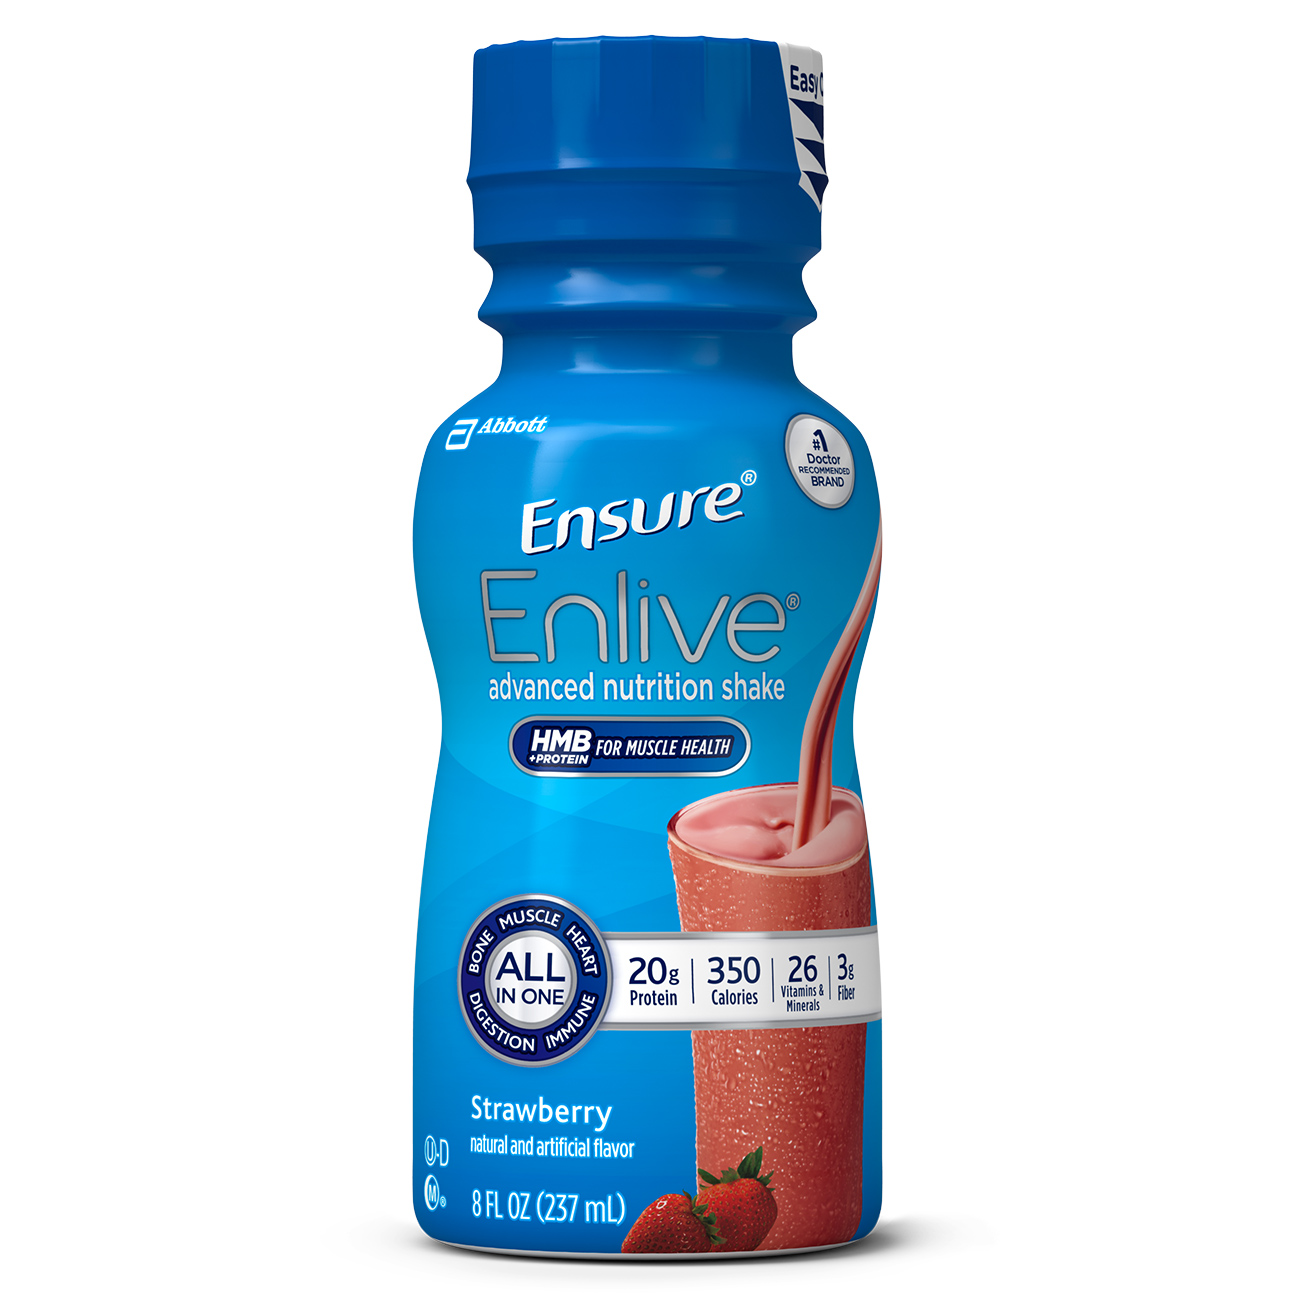 Ensure Enlive Advanced Nutrition Shake Strawberry with 20 grams of high-quality protein, Meal Replacement Shakes, 8 fl oz Bottles (Pack of 16)